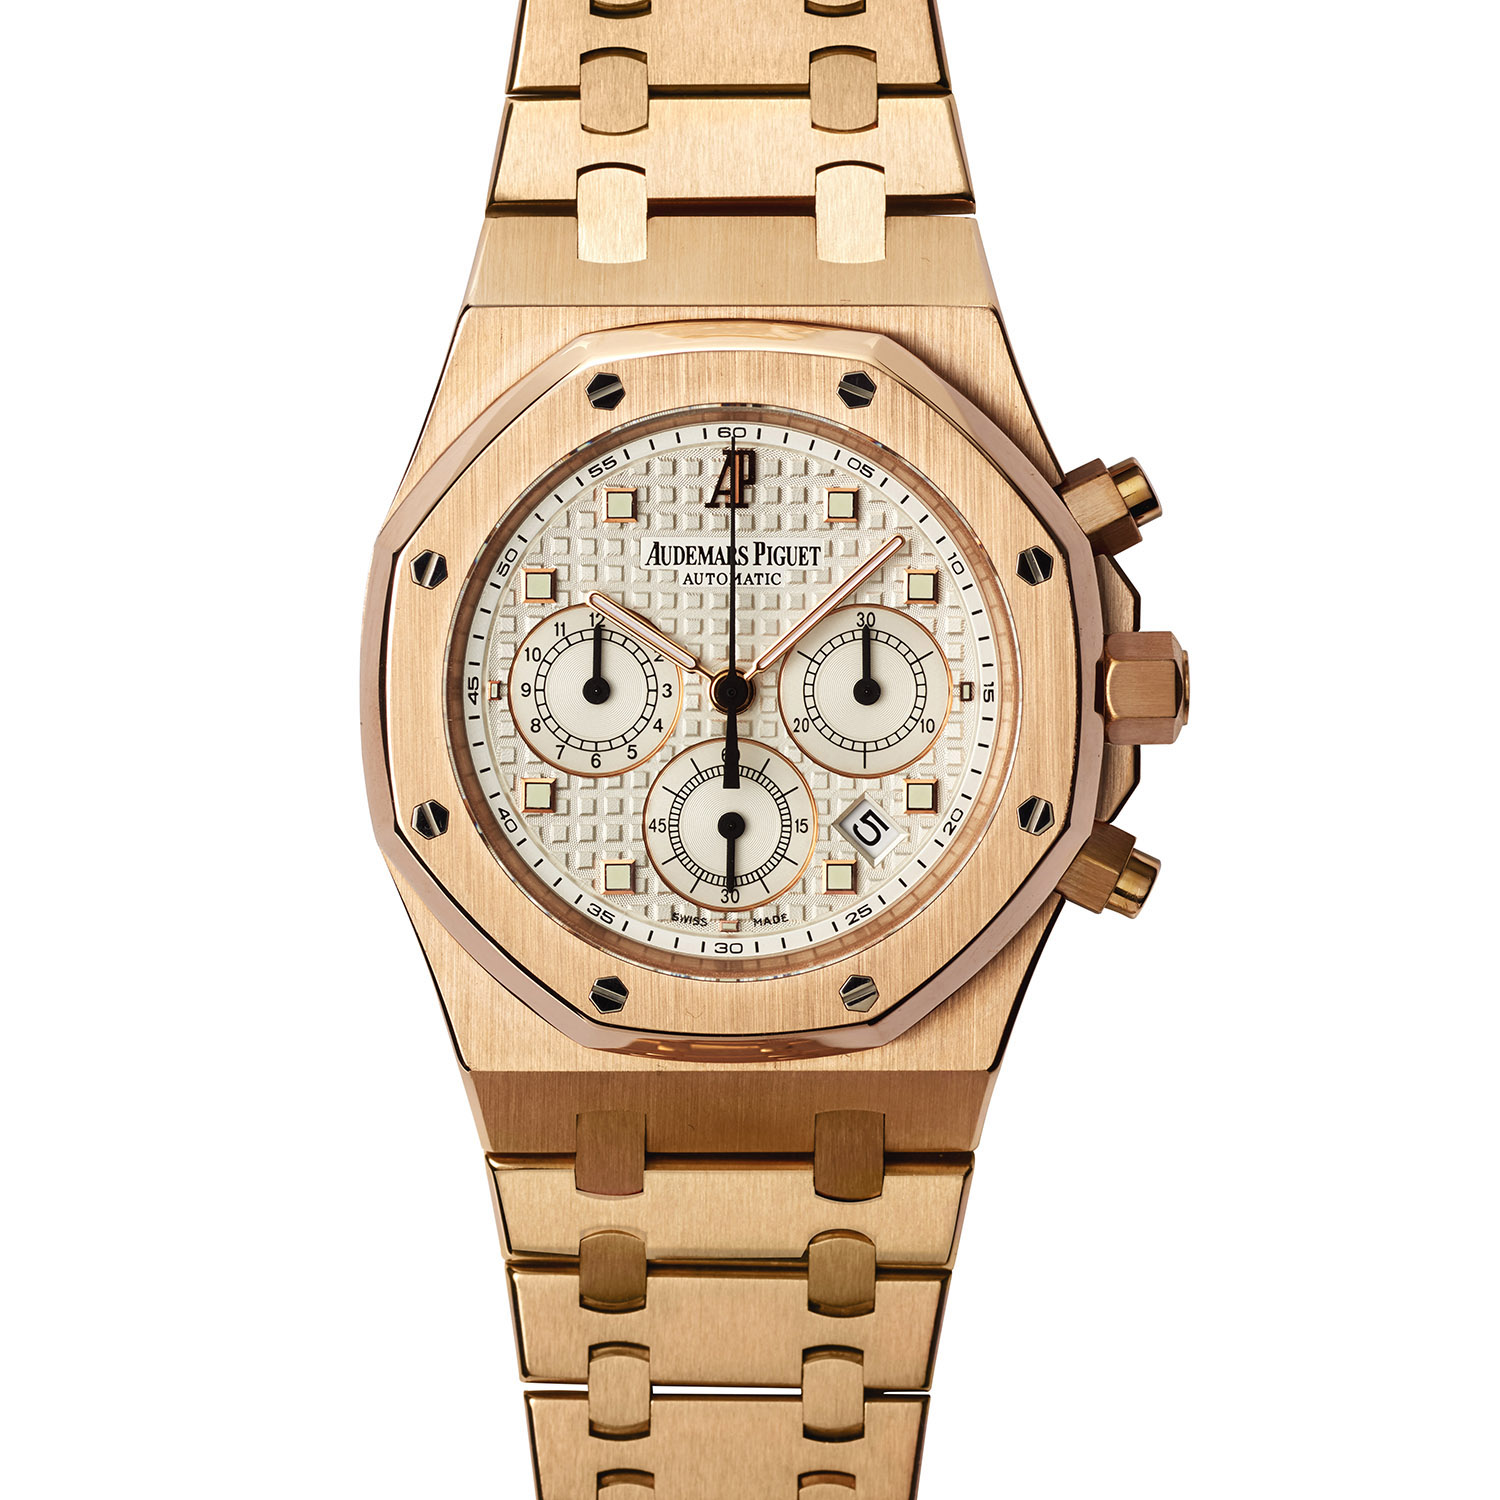 Audemars Piguet Royal Oak Wristwatch, Serial FL41769